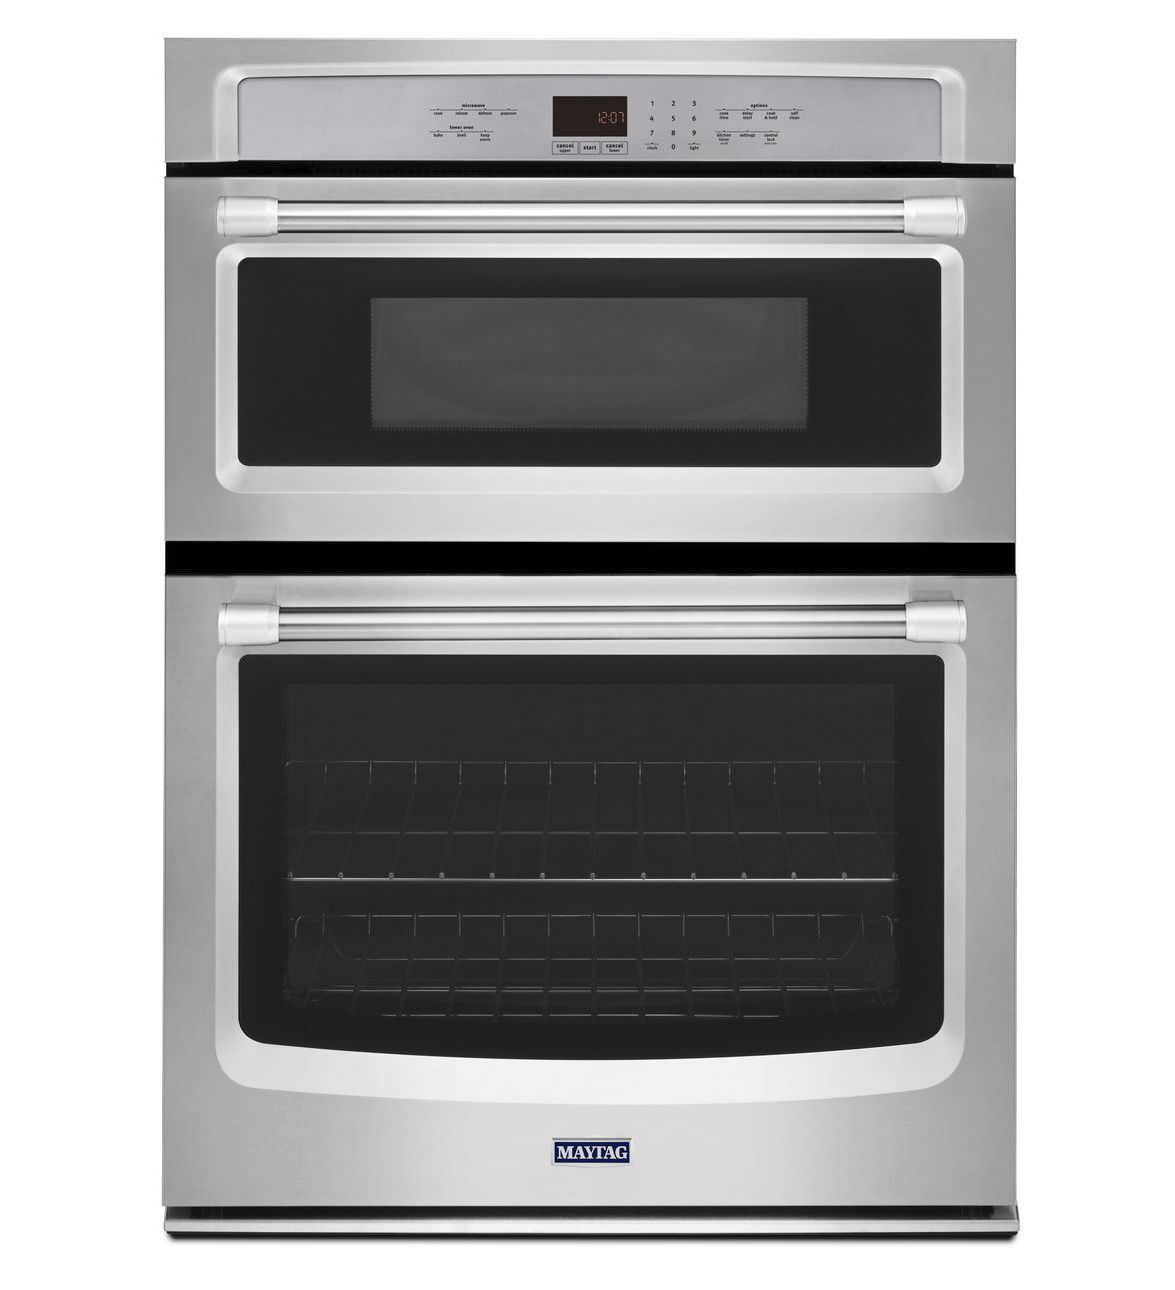 Electric oven / microwave / built-in - MMW7730DS - Maytag